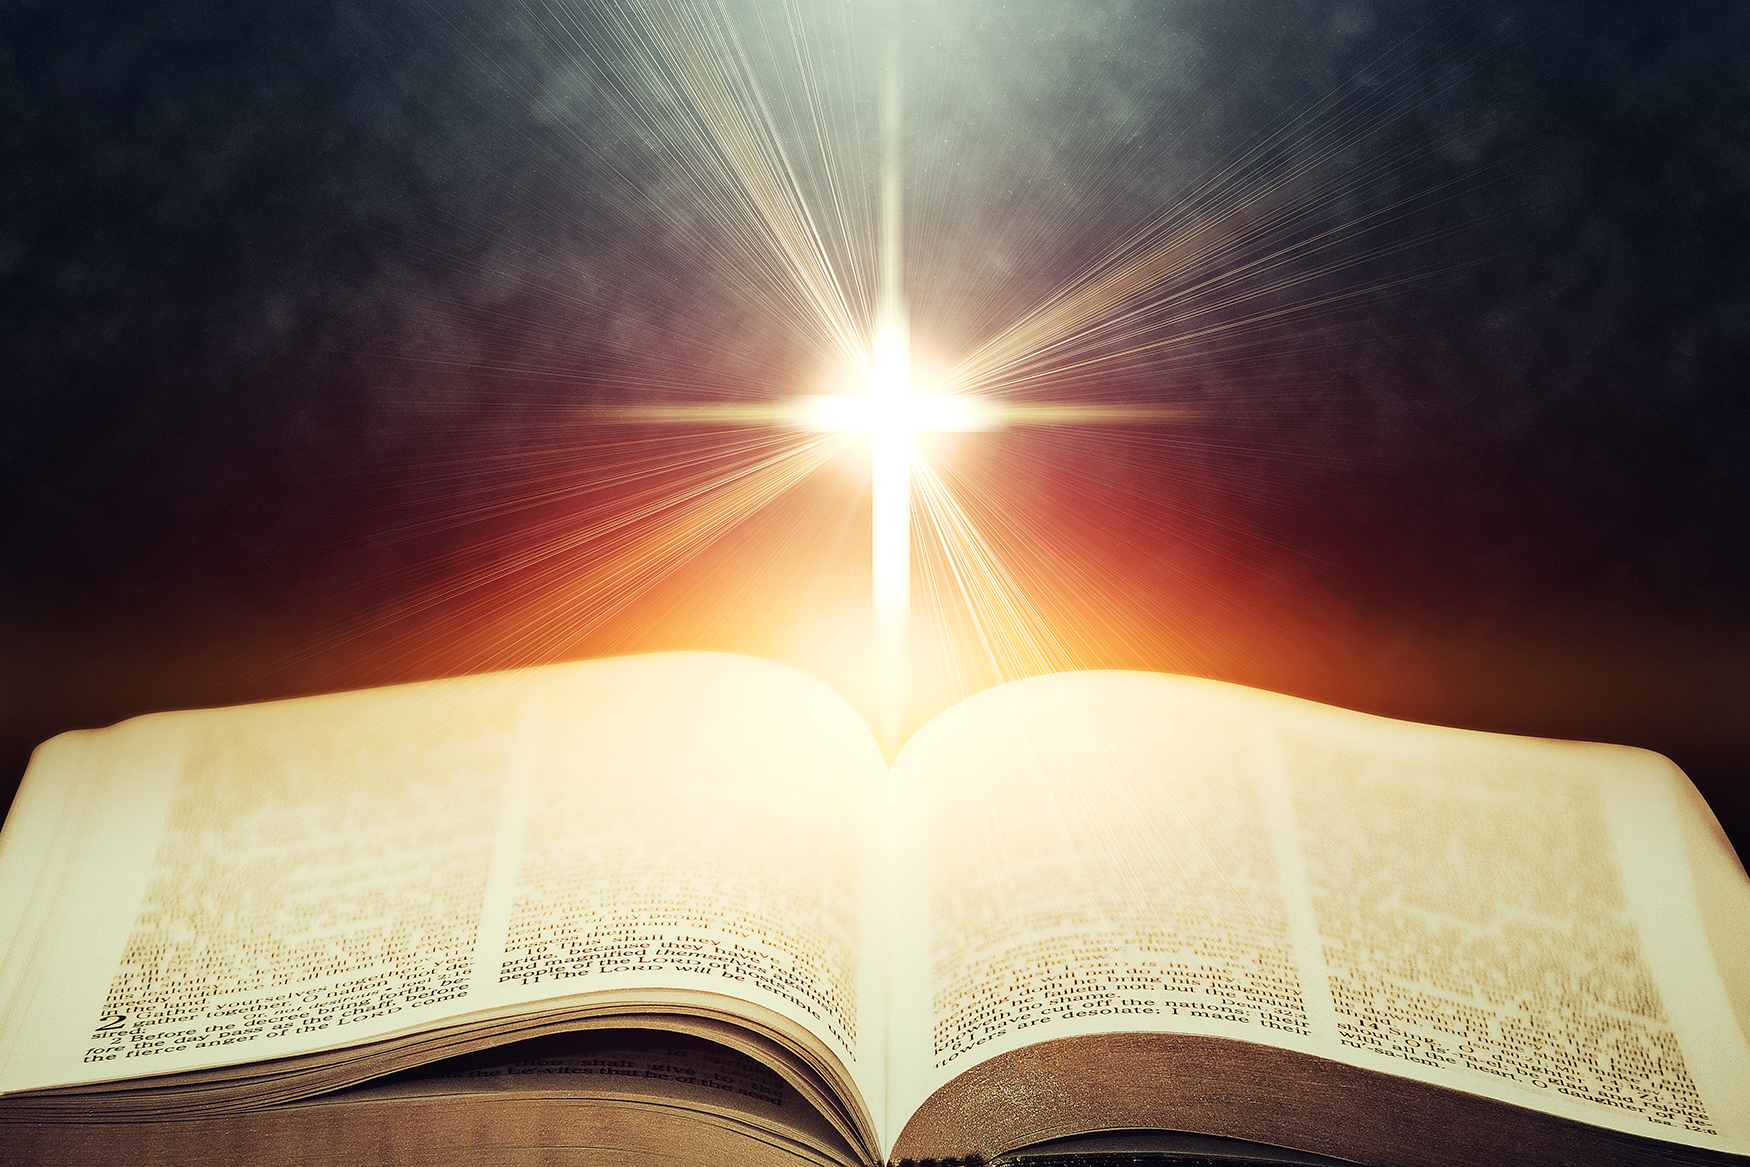 The Good News Today - The Bible Is God's Testimony